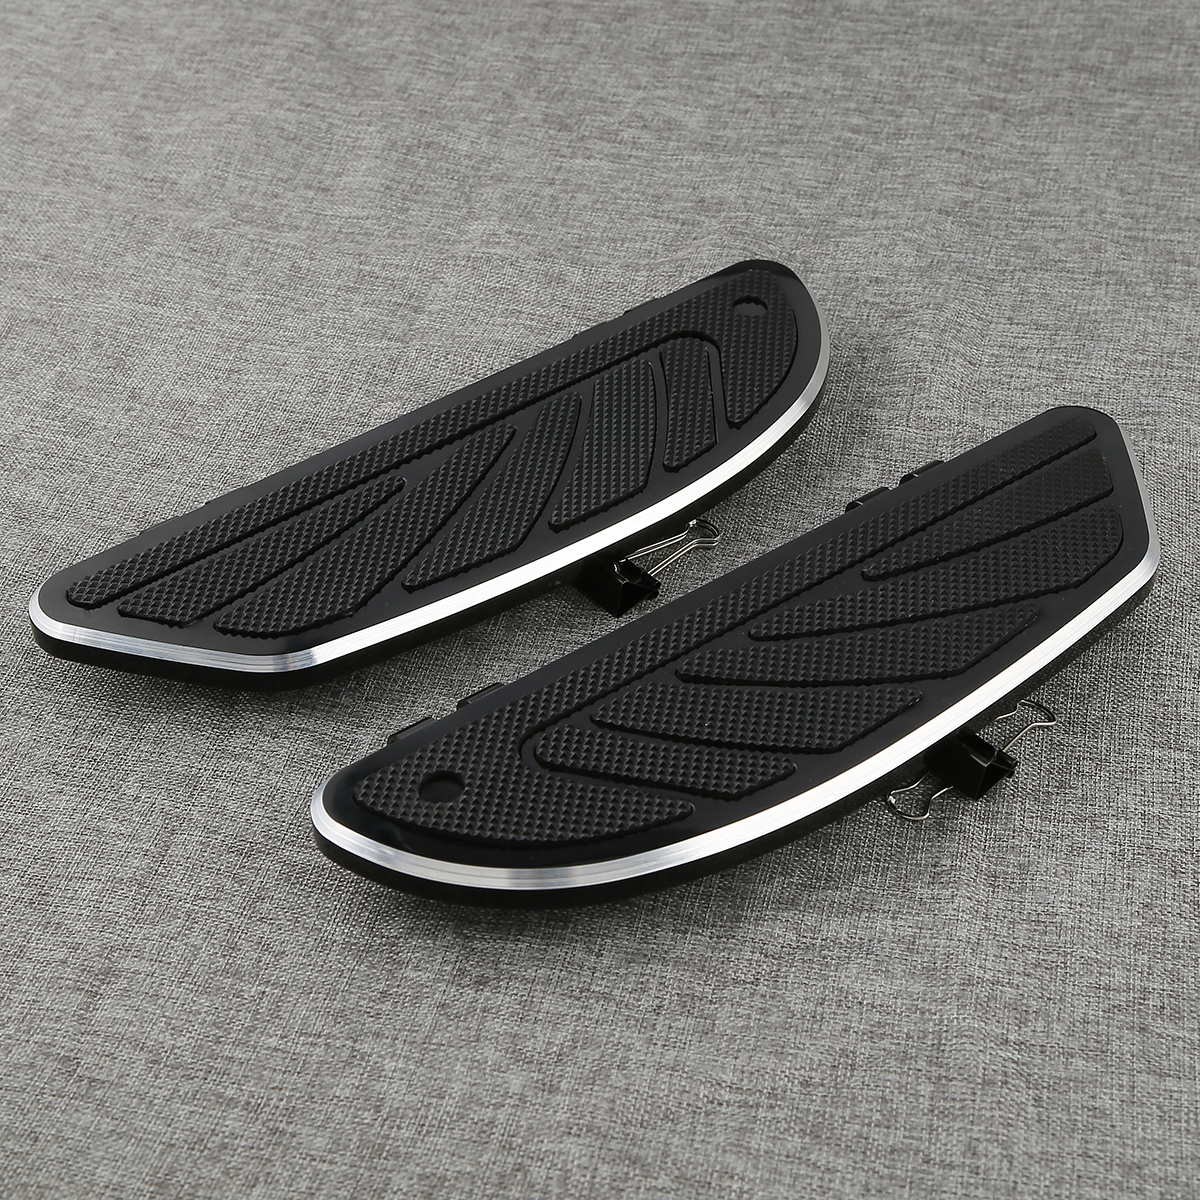 Tcmt Airflow Rider Footboard Kit For Harley Touring Electra Road Glide Fltr 1986